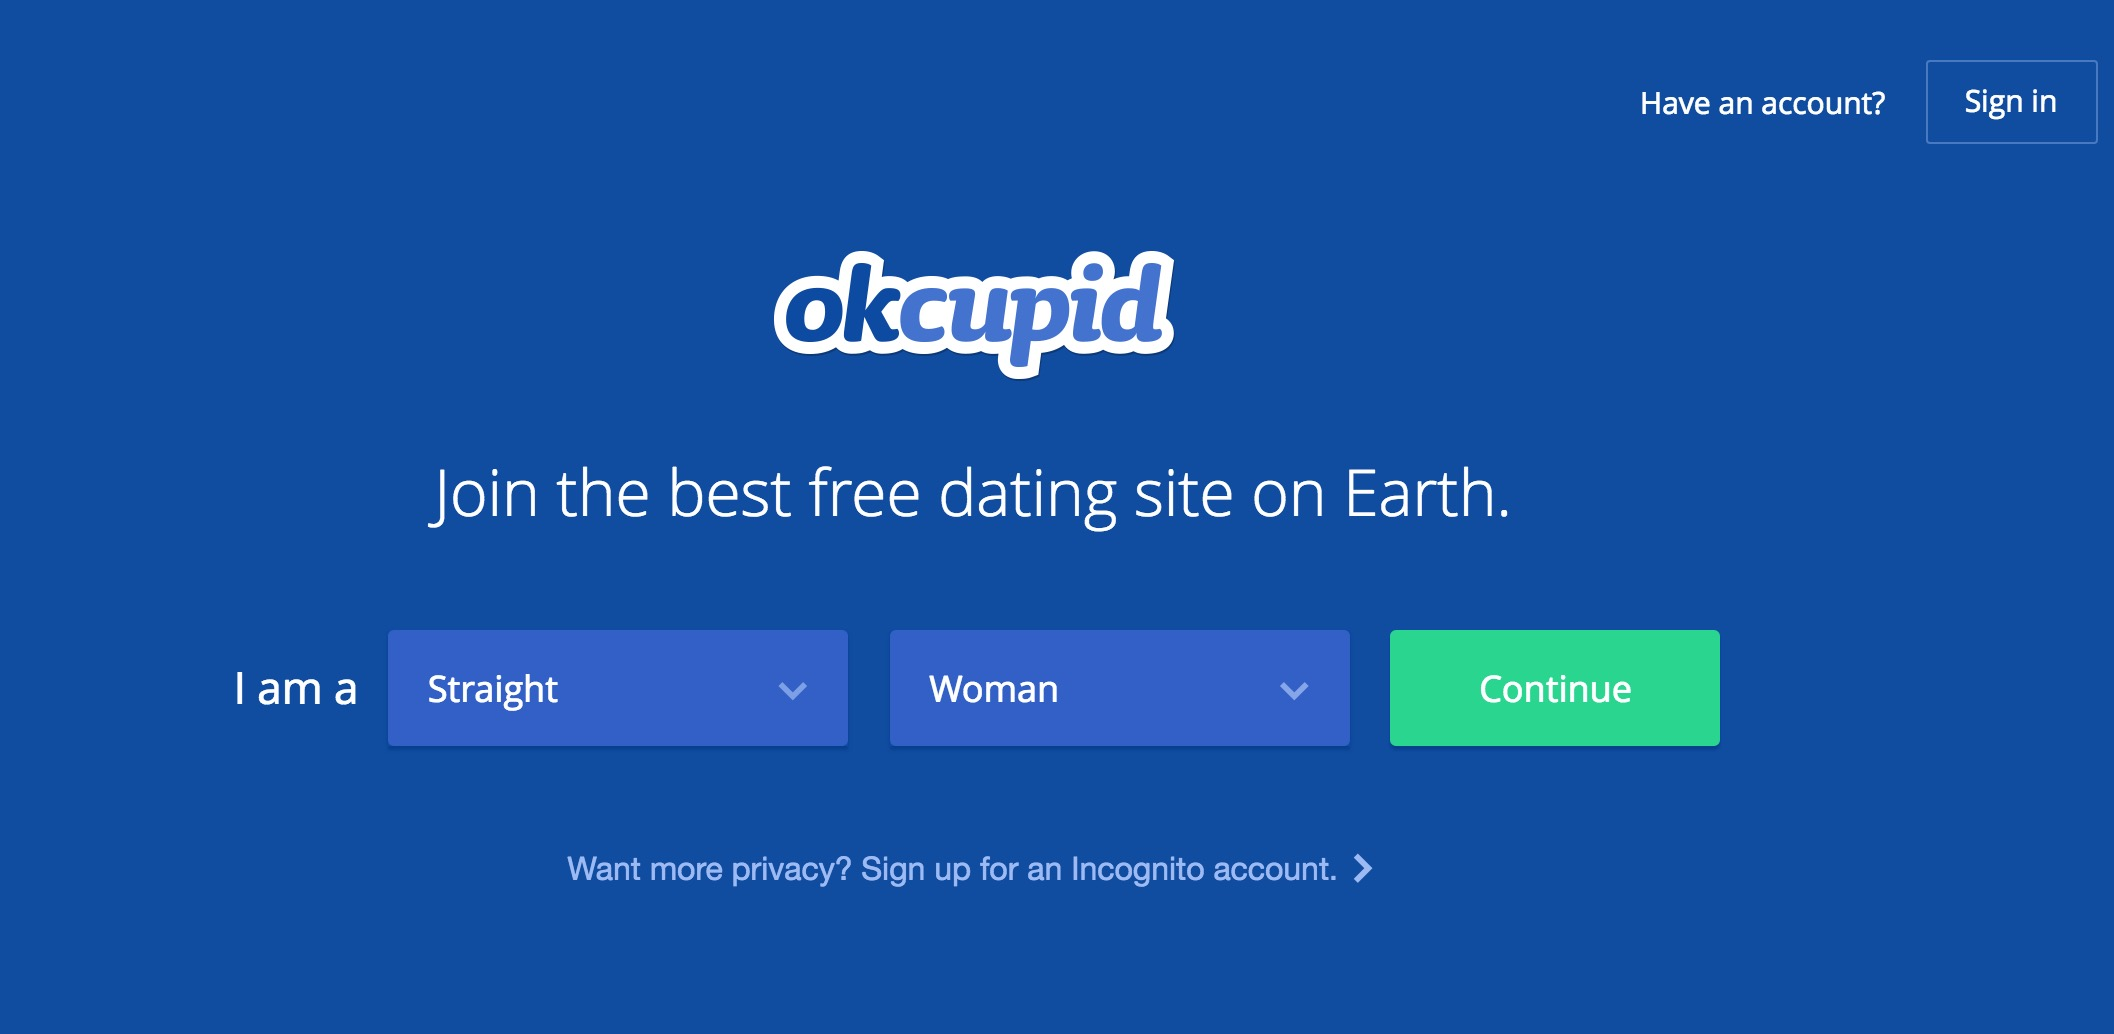 7 addictive online dating sites that aren t OKCupid - HelloGiggles